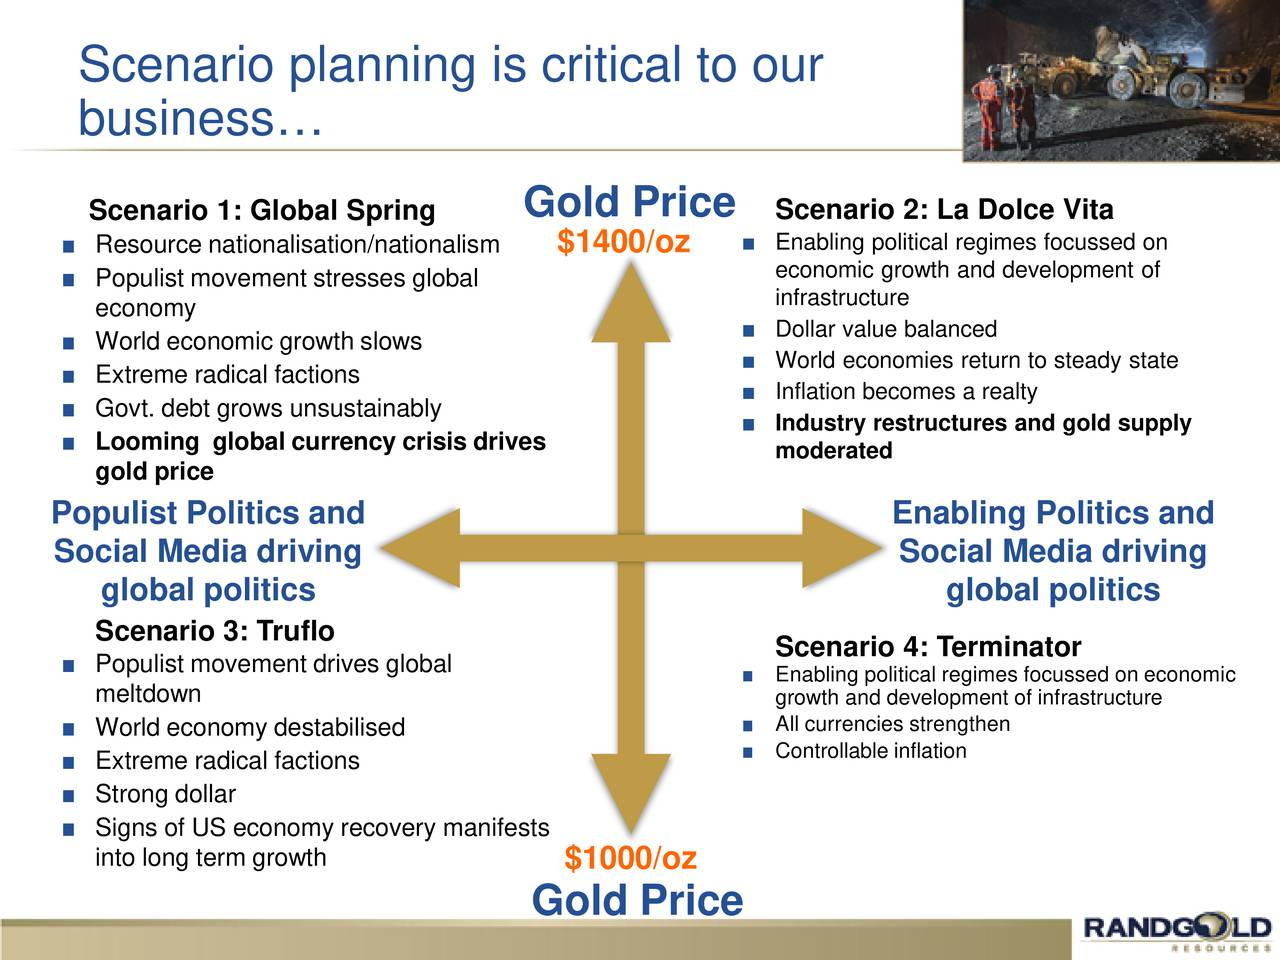 Randgold resources gold investor presentation slideshow business scenario 1 global spring gold price scenario 2 la dolce vita resource nationalisation buycottarizona